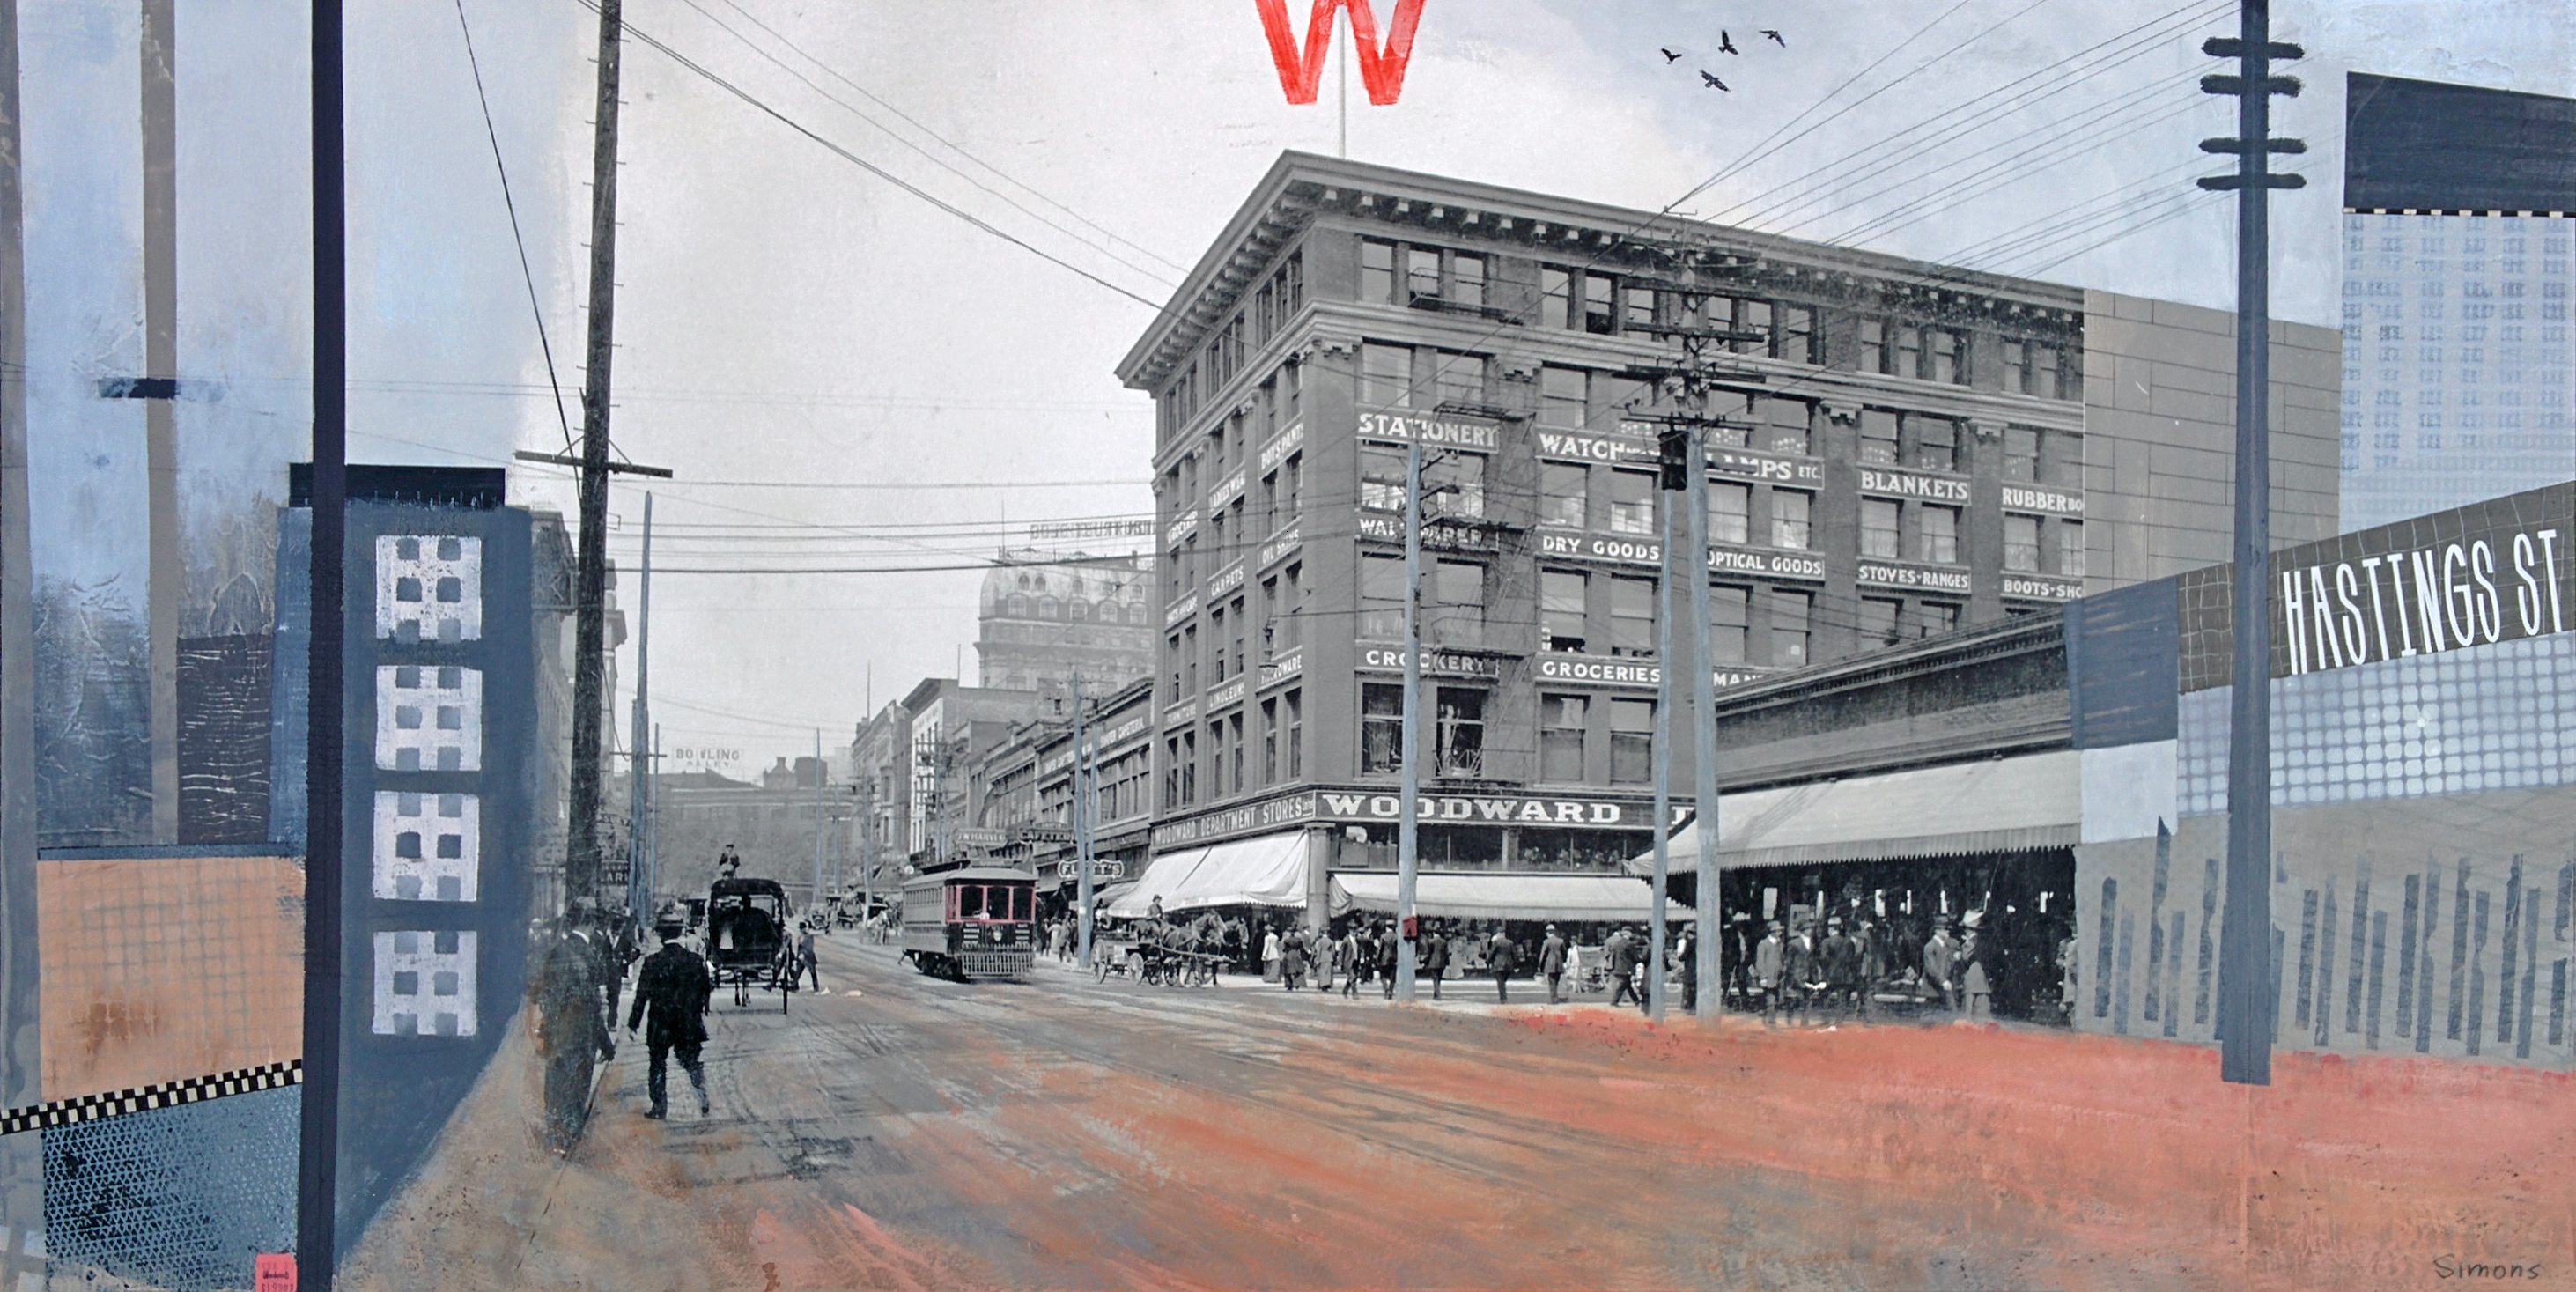 Vancouver Revisited: Hastings Street